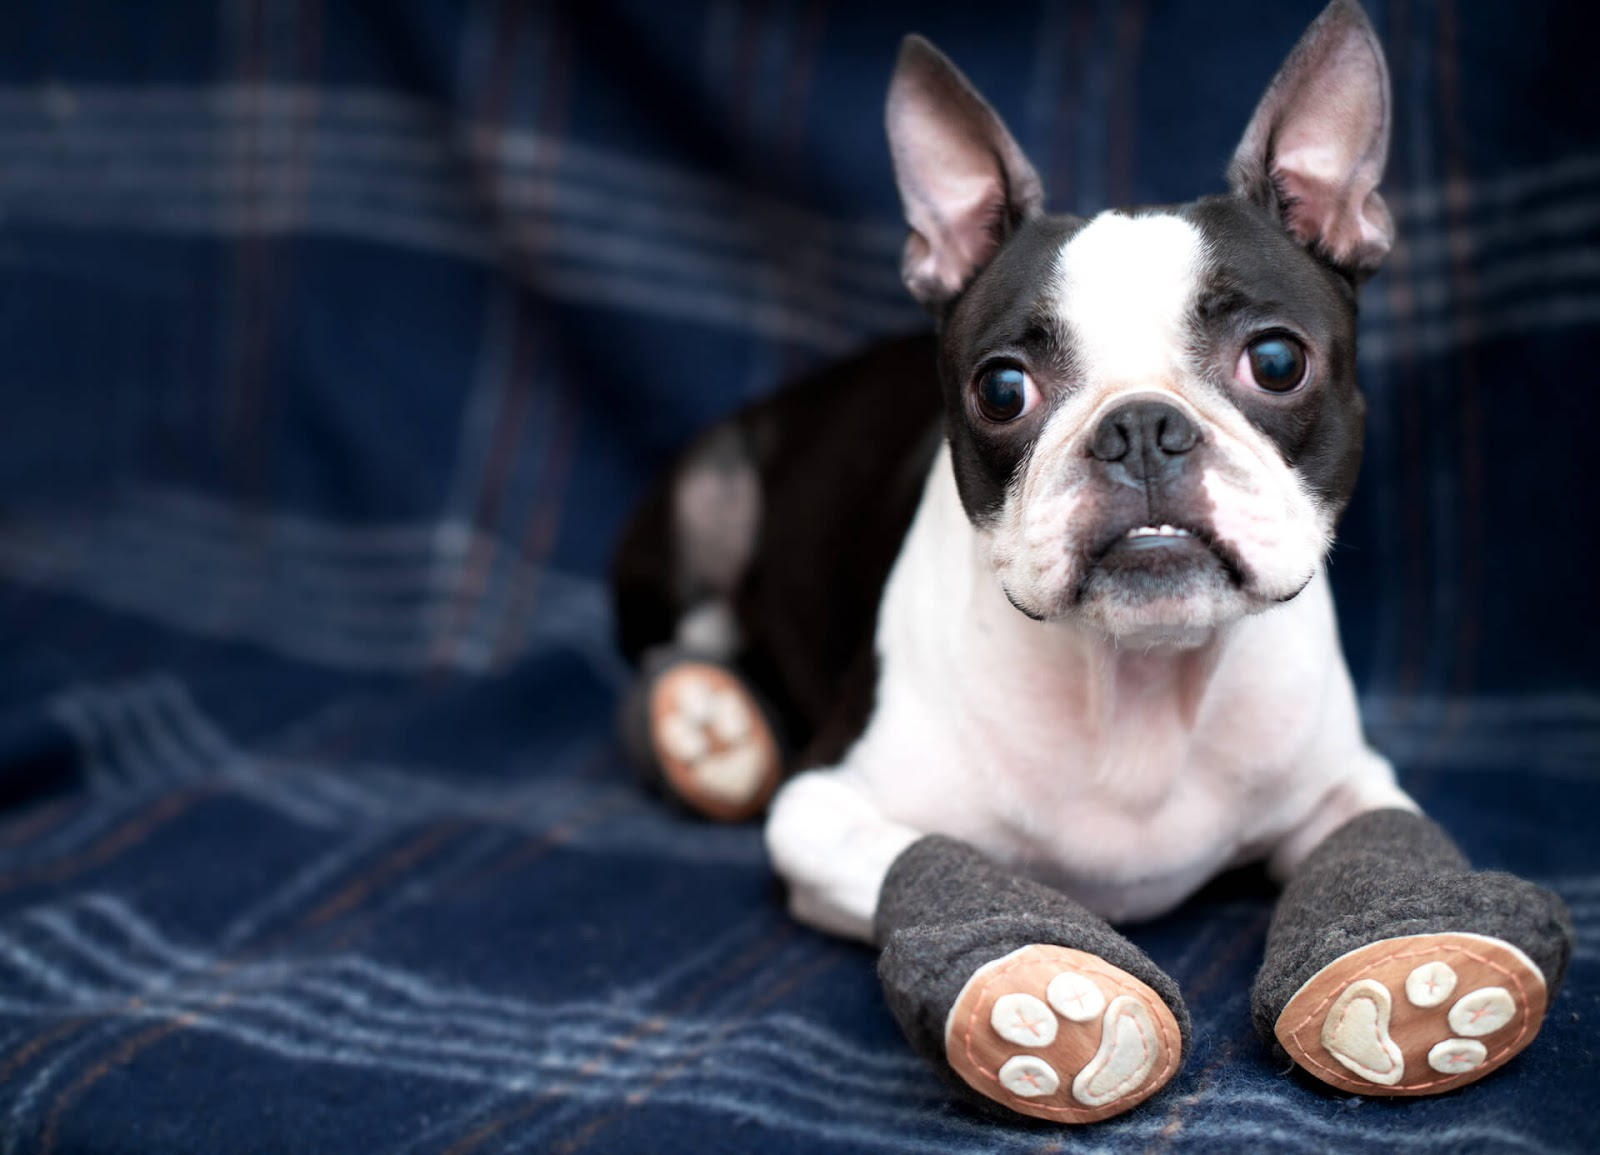 Boston terrier with cute, homemade dog shoes on